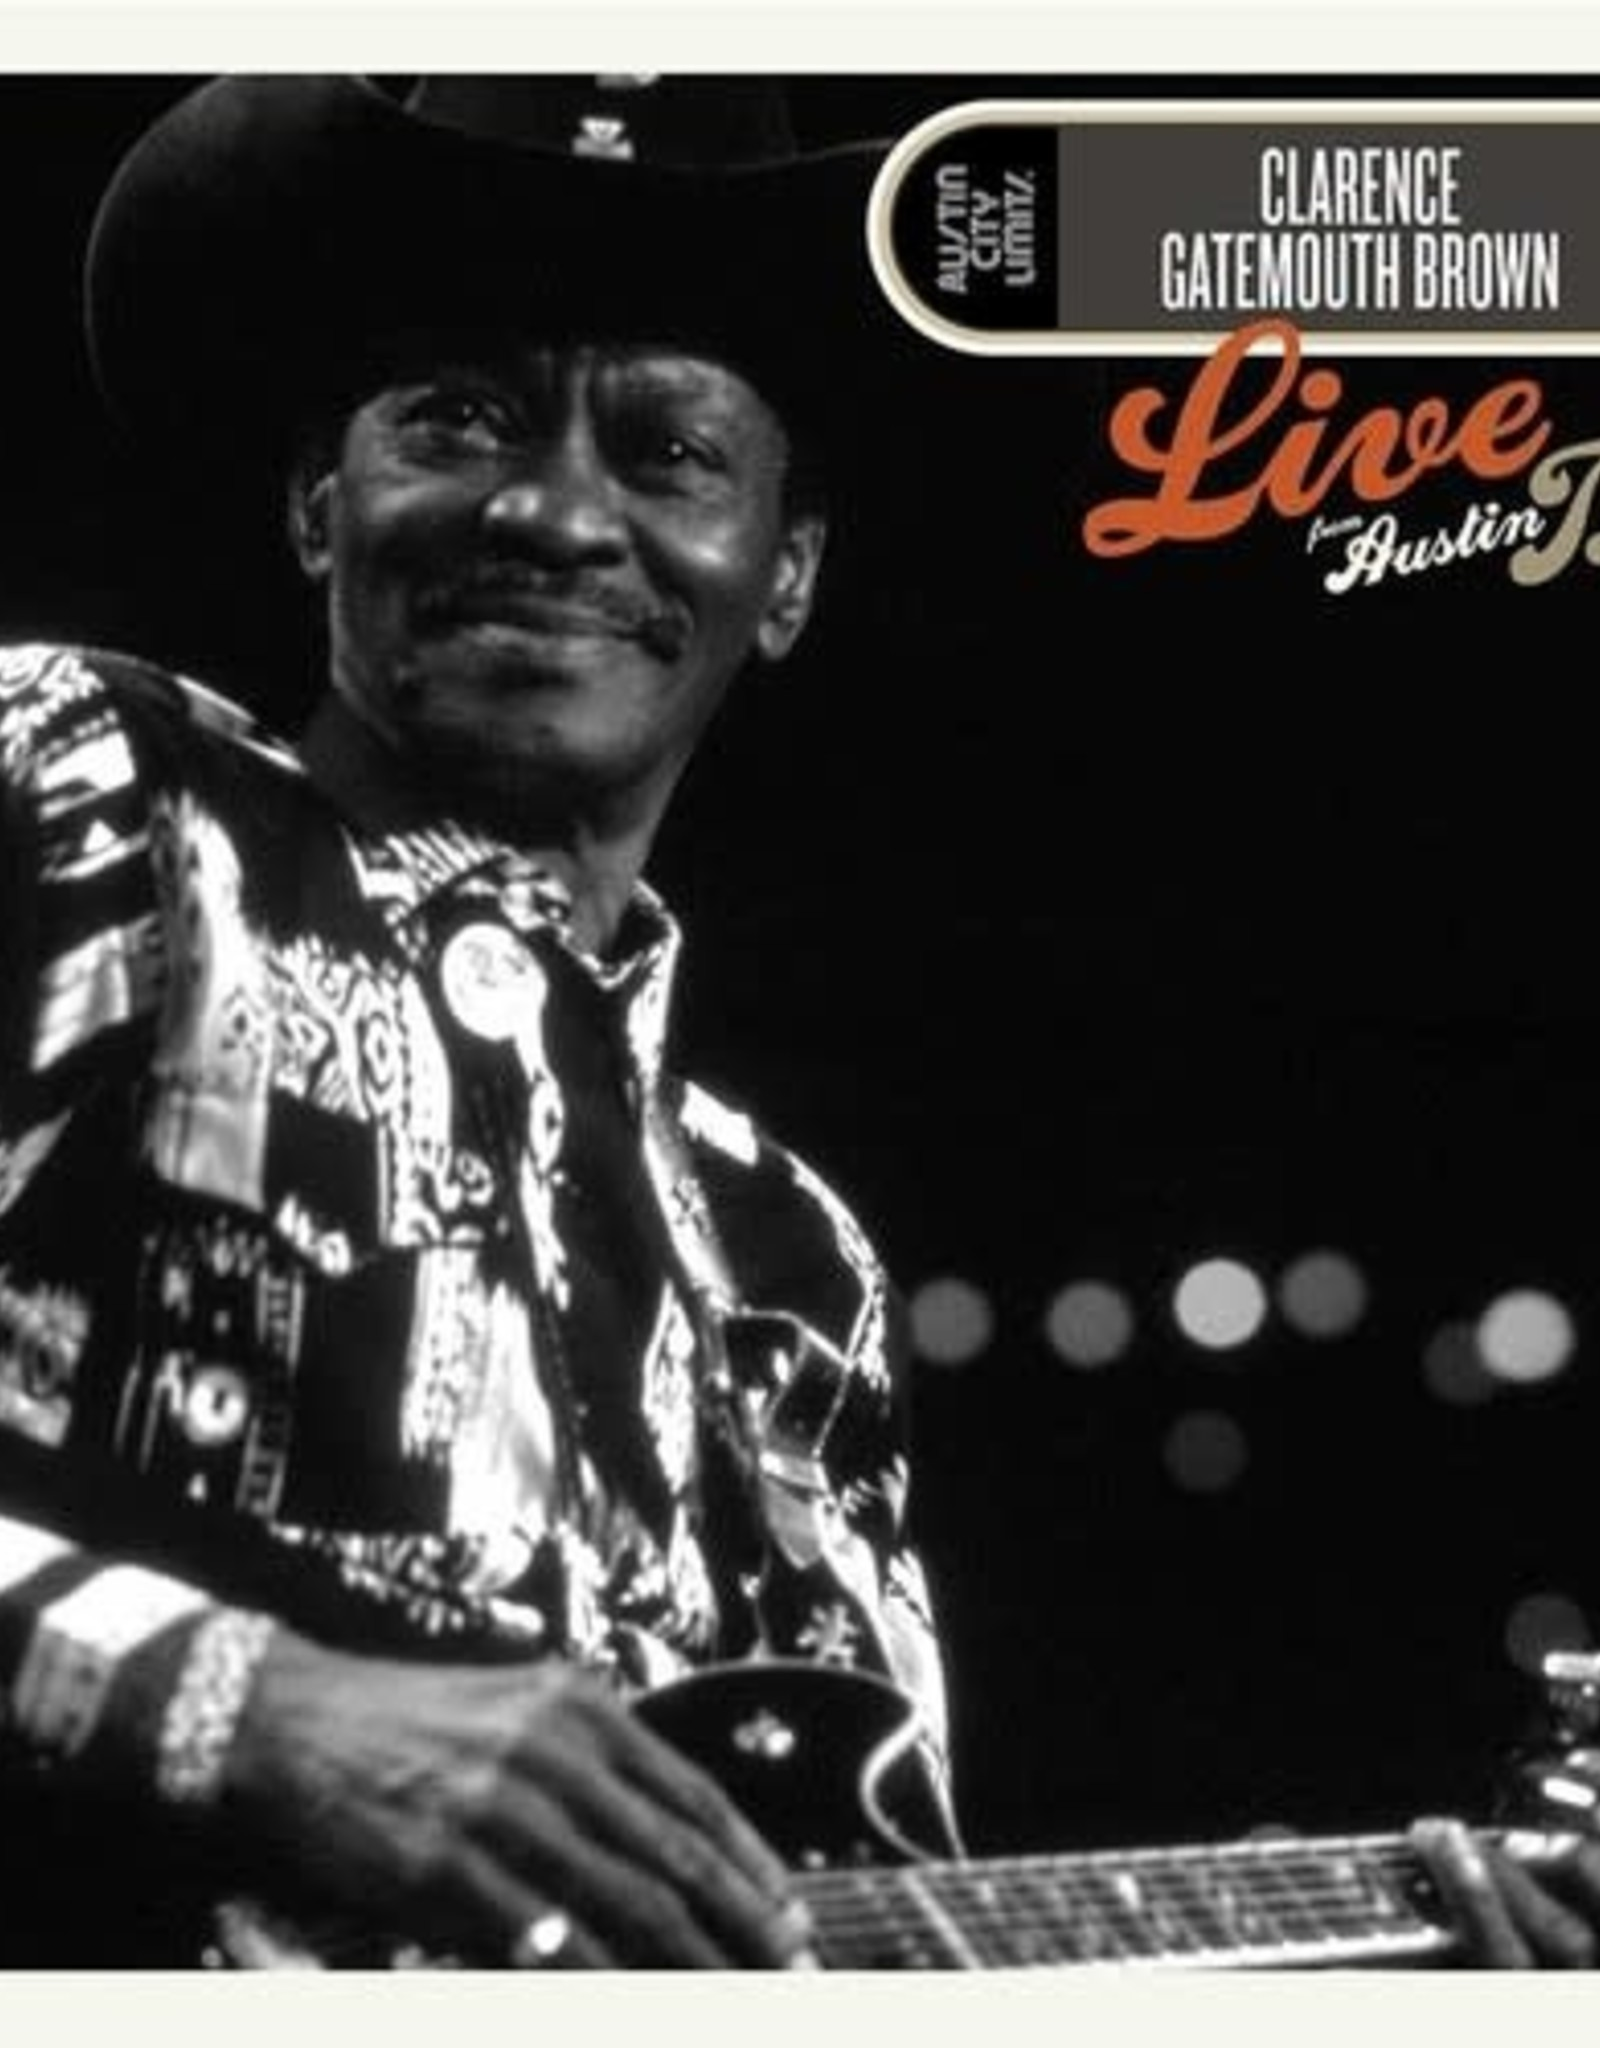 Clarence Gatemouth Brown - Live From Austin, Tx